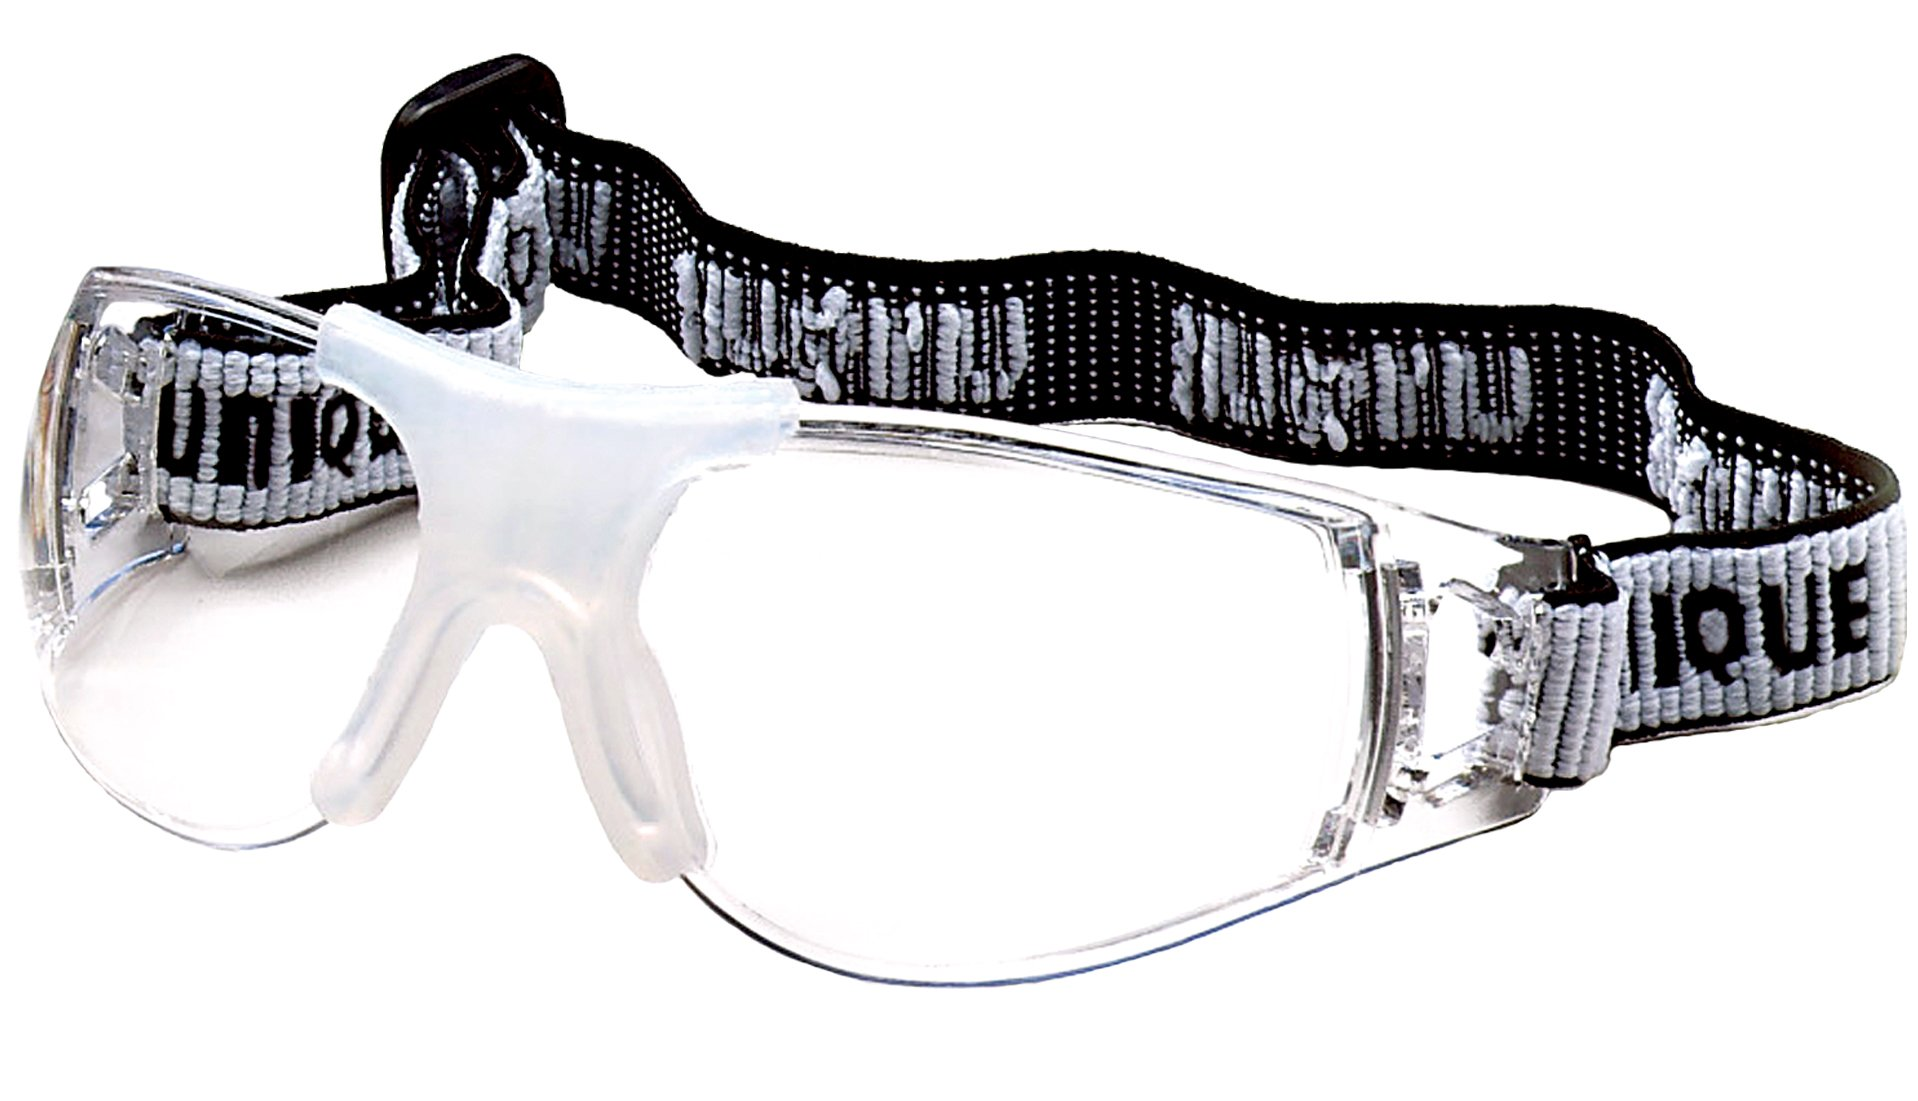 Unique Sports Youth Super Specs Eye Protector Youth